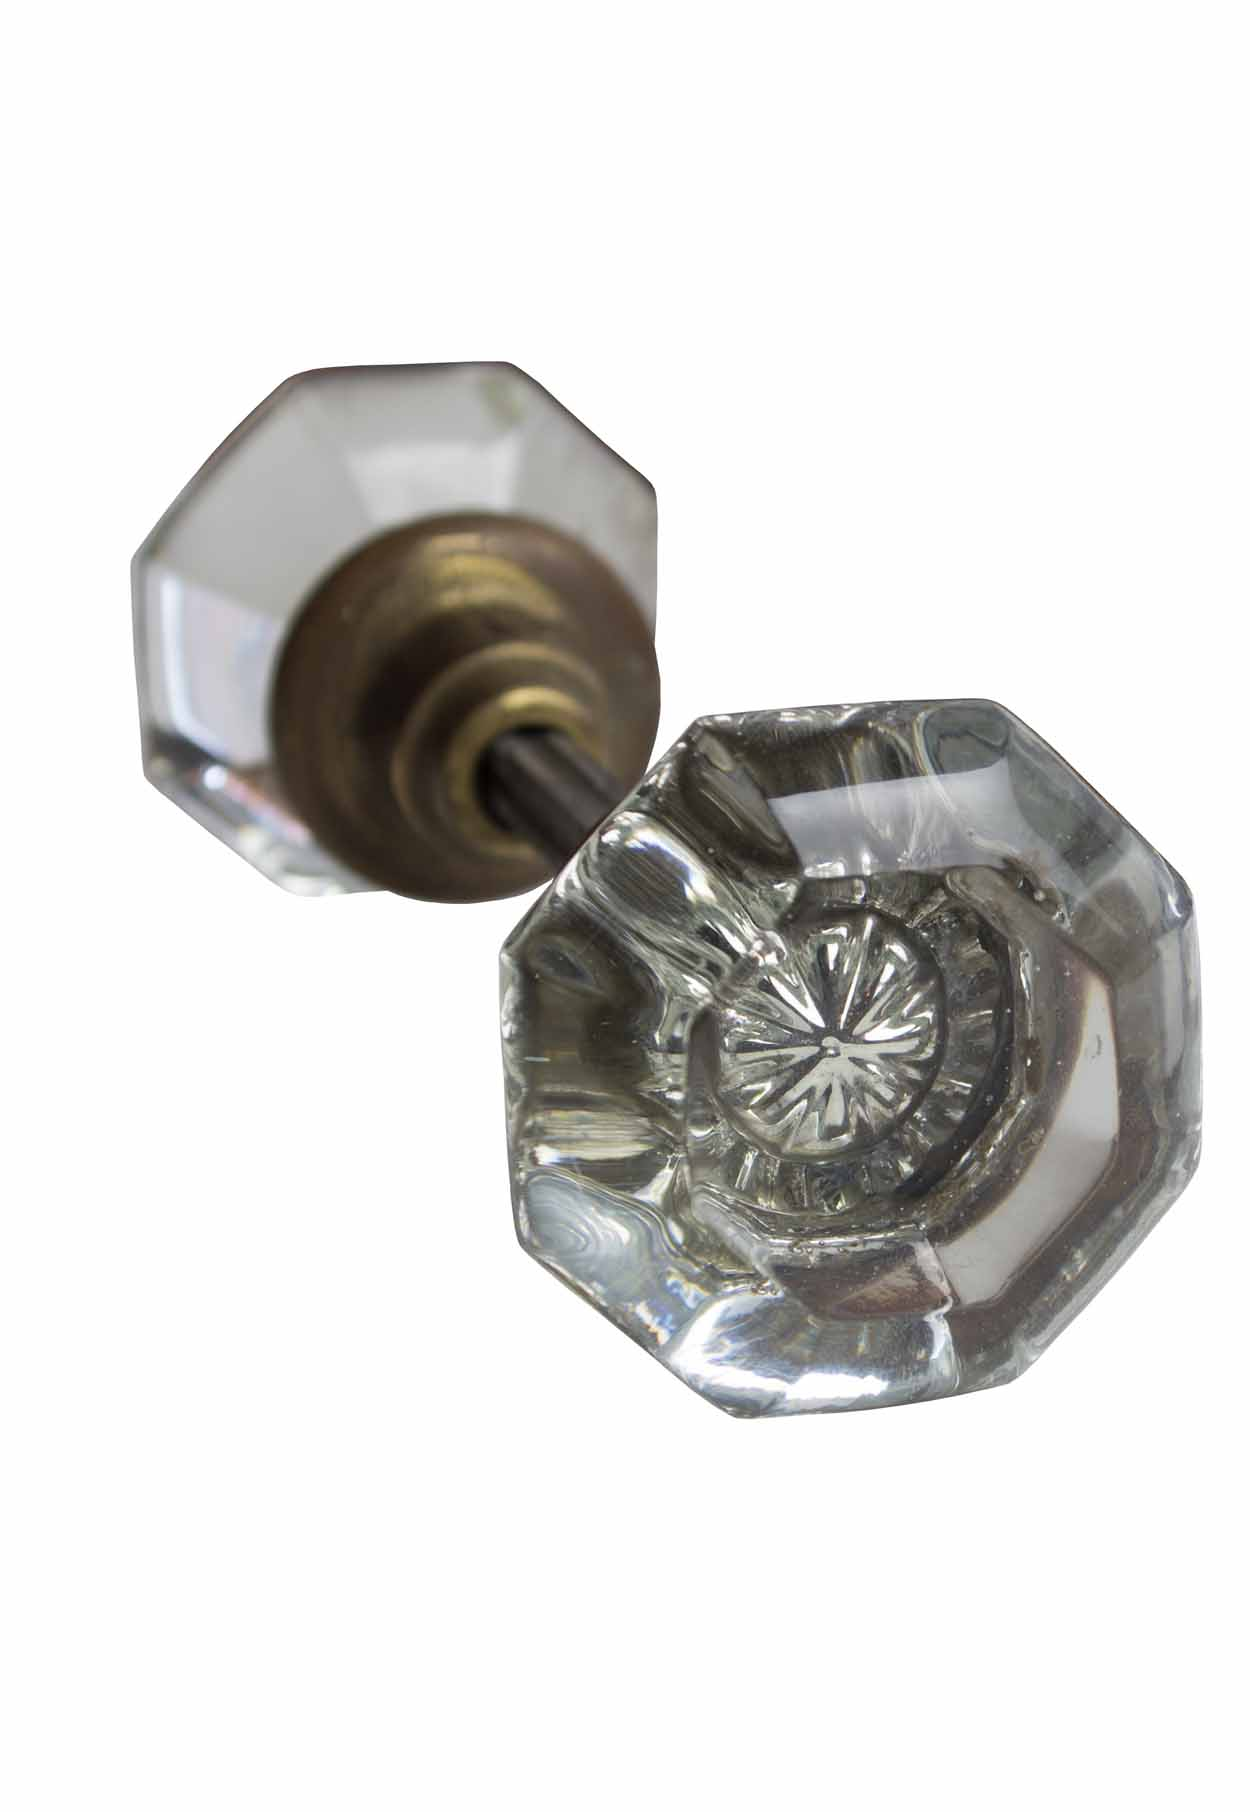 8 SIDED CRYSTAL ROUND KNOB SET WITH BRASS HARDWARE, LARGE  AA# H20182   2 sets available $145.00 each set